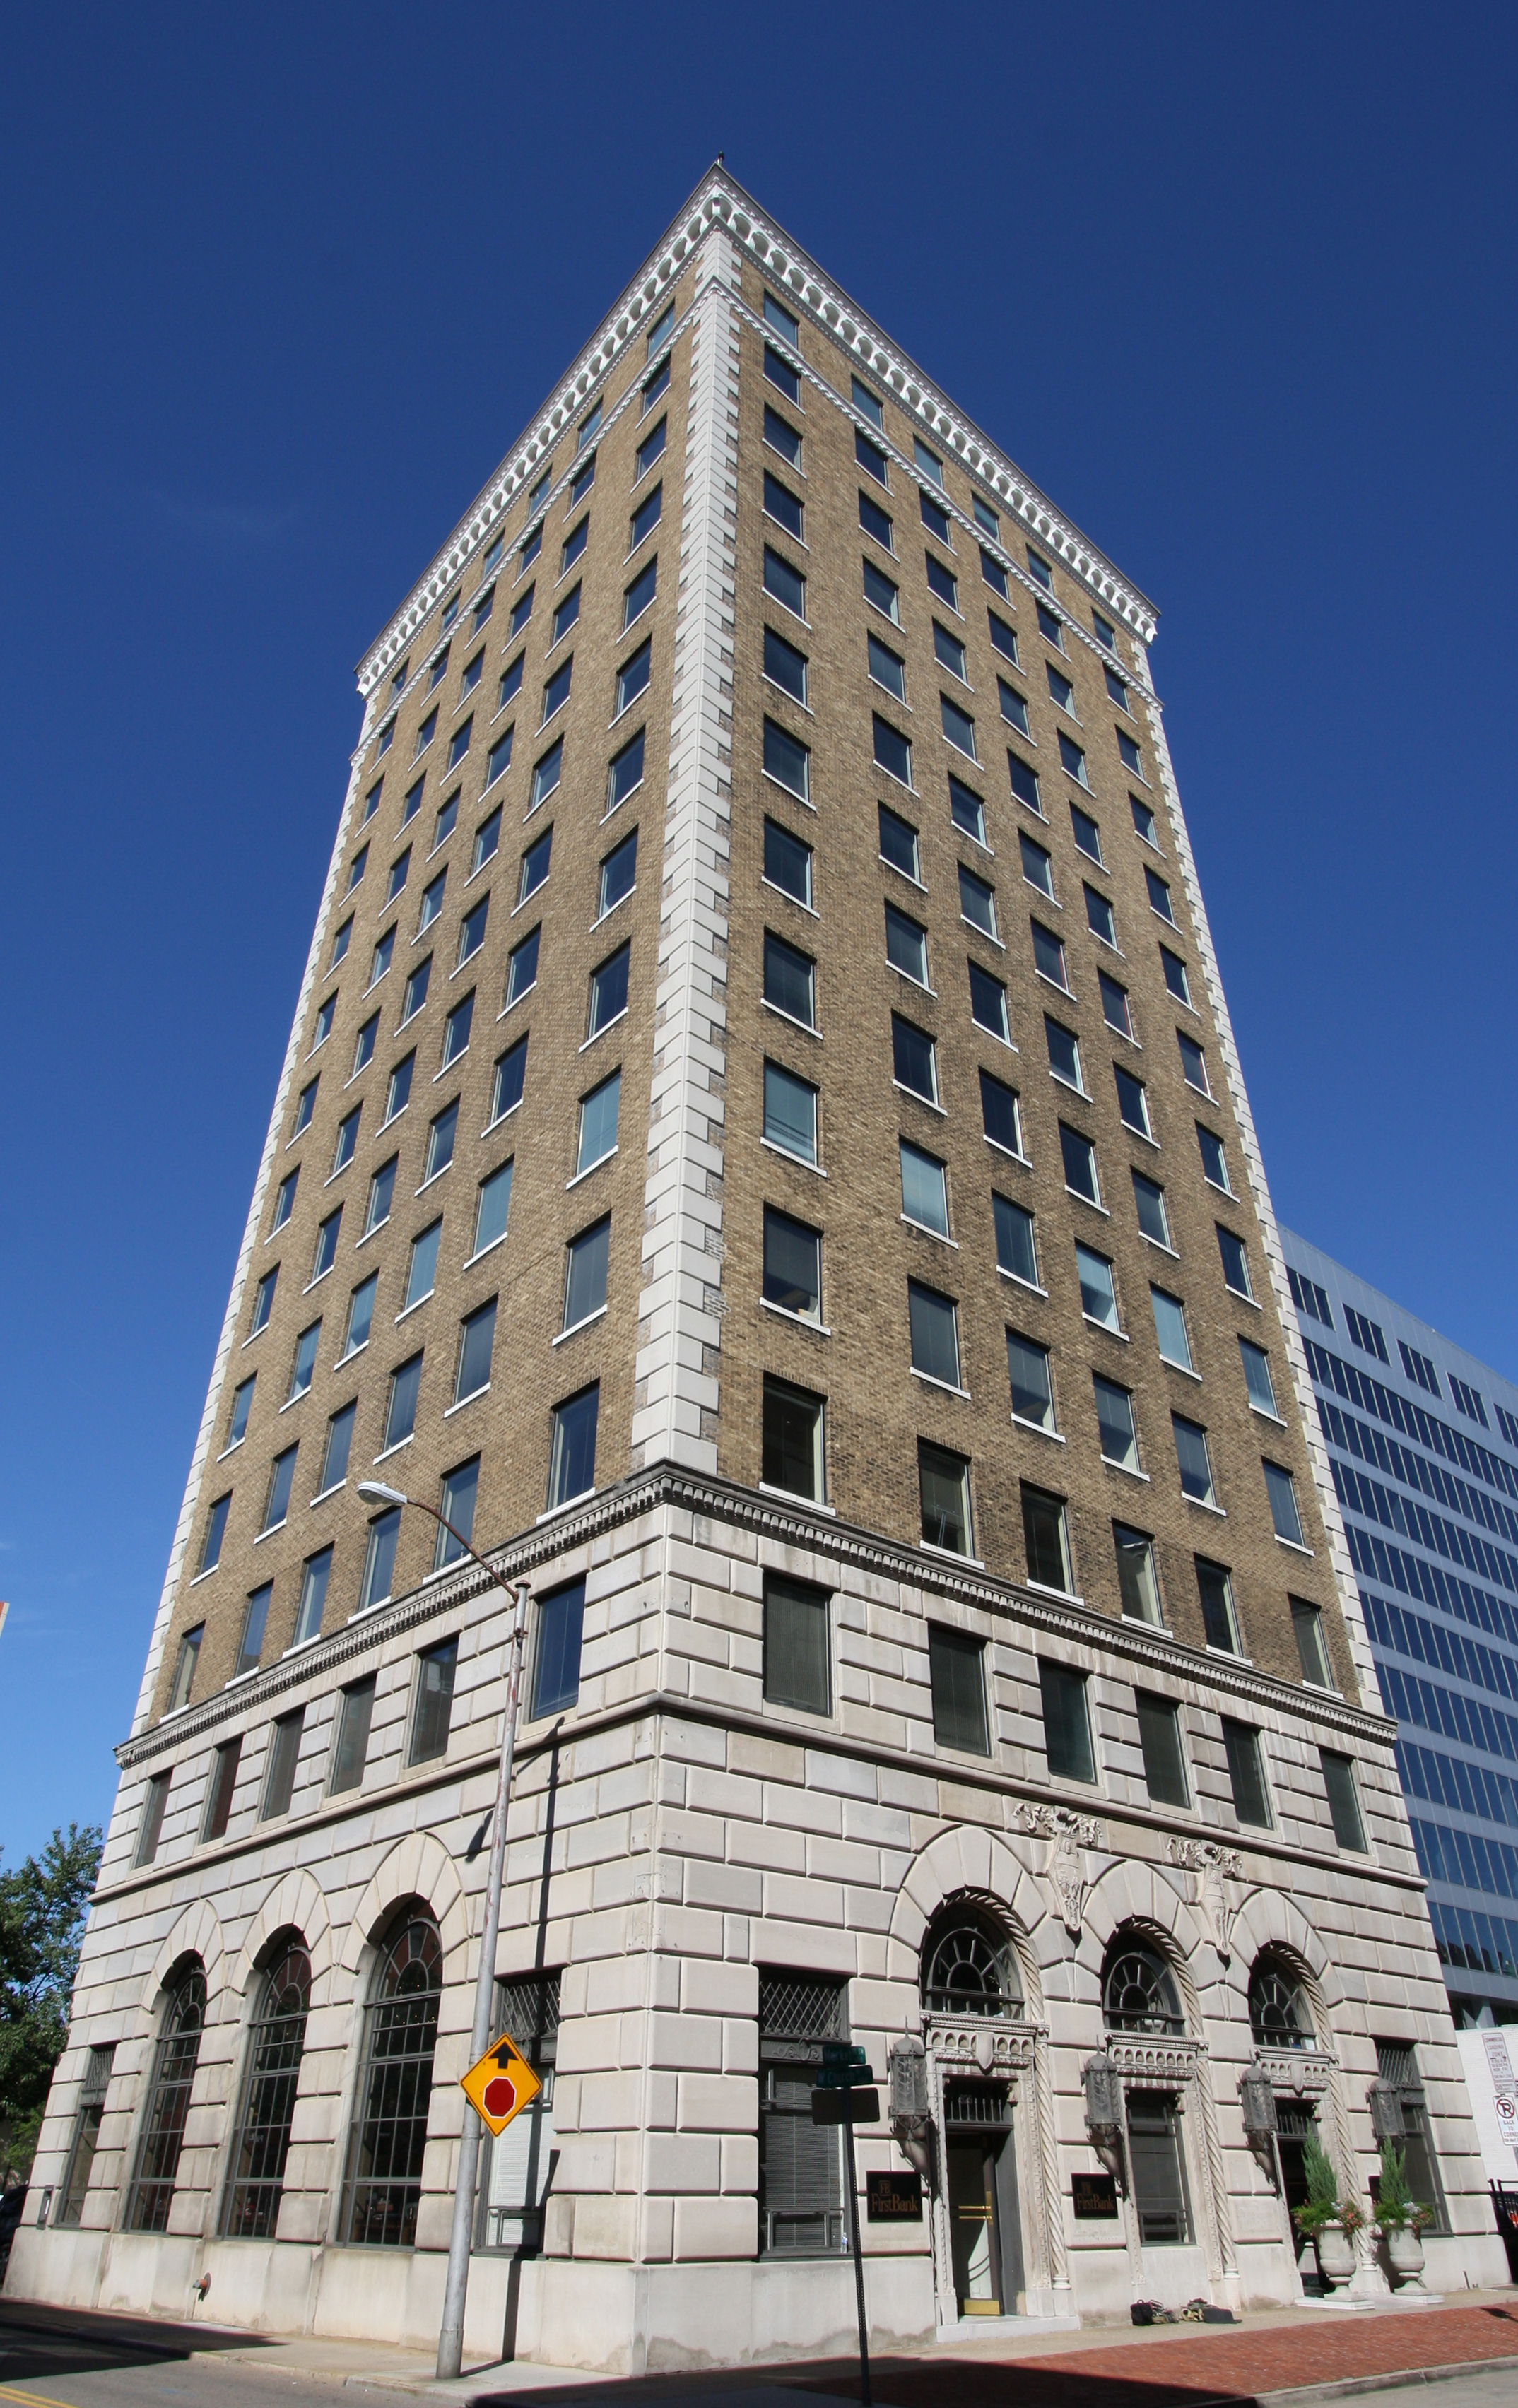 The General Building - Knoxville, TN - Built in 1875 - Renaissance Revival Style - Commercial Office Use